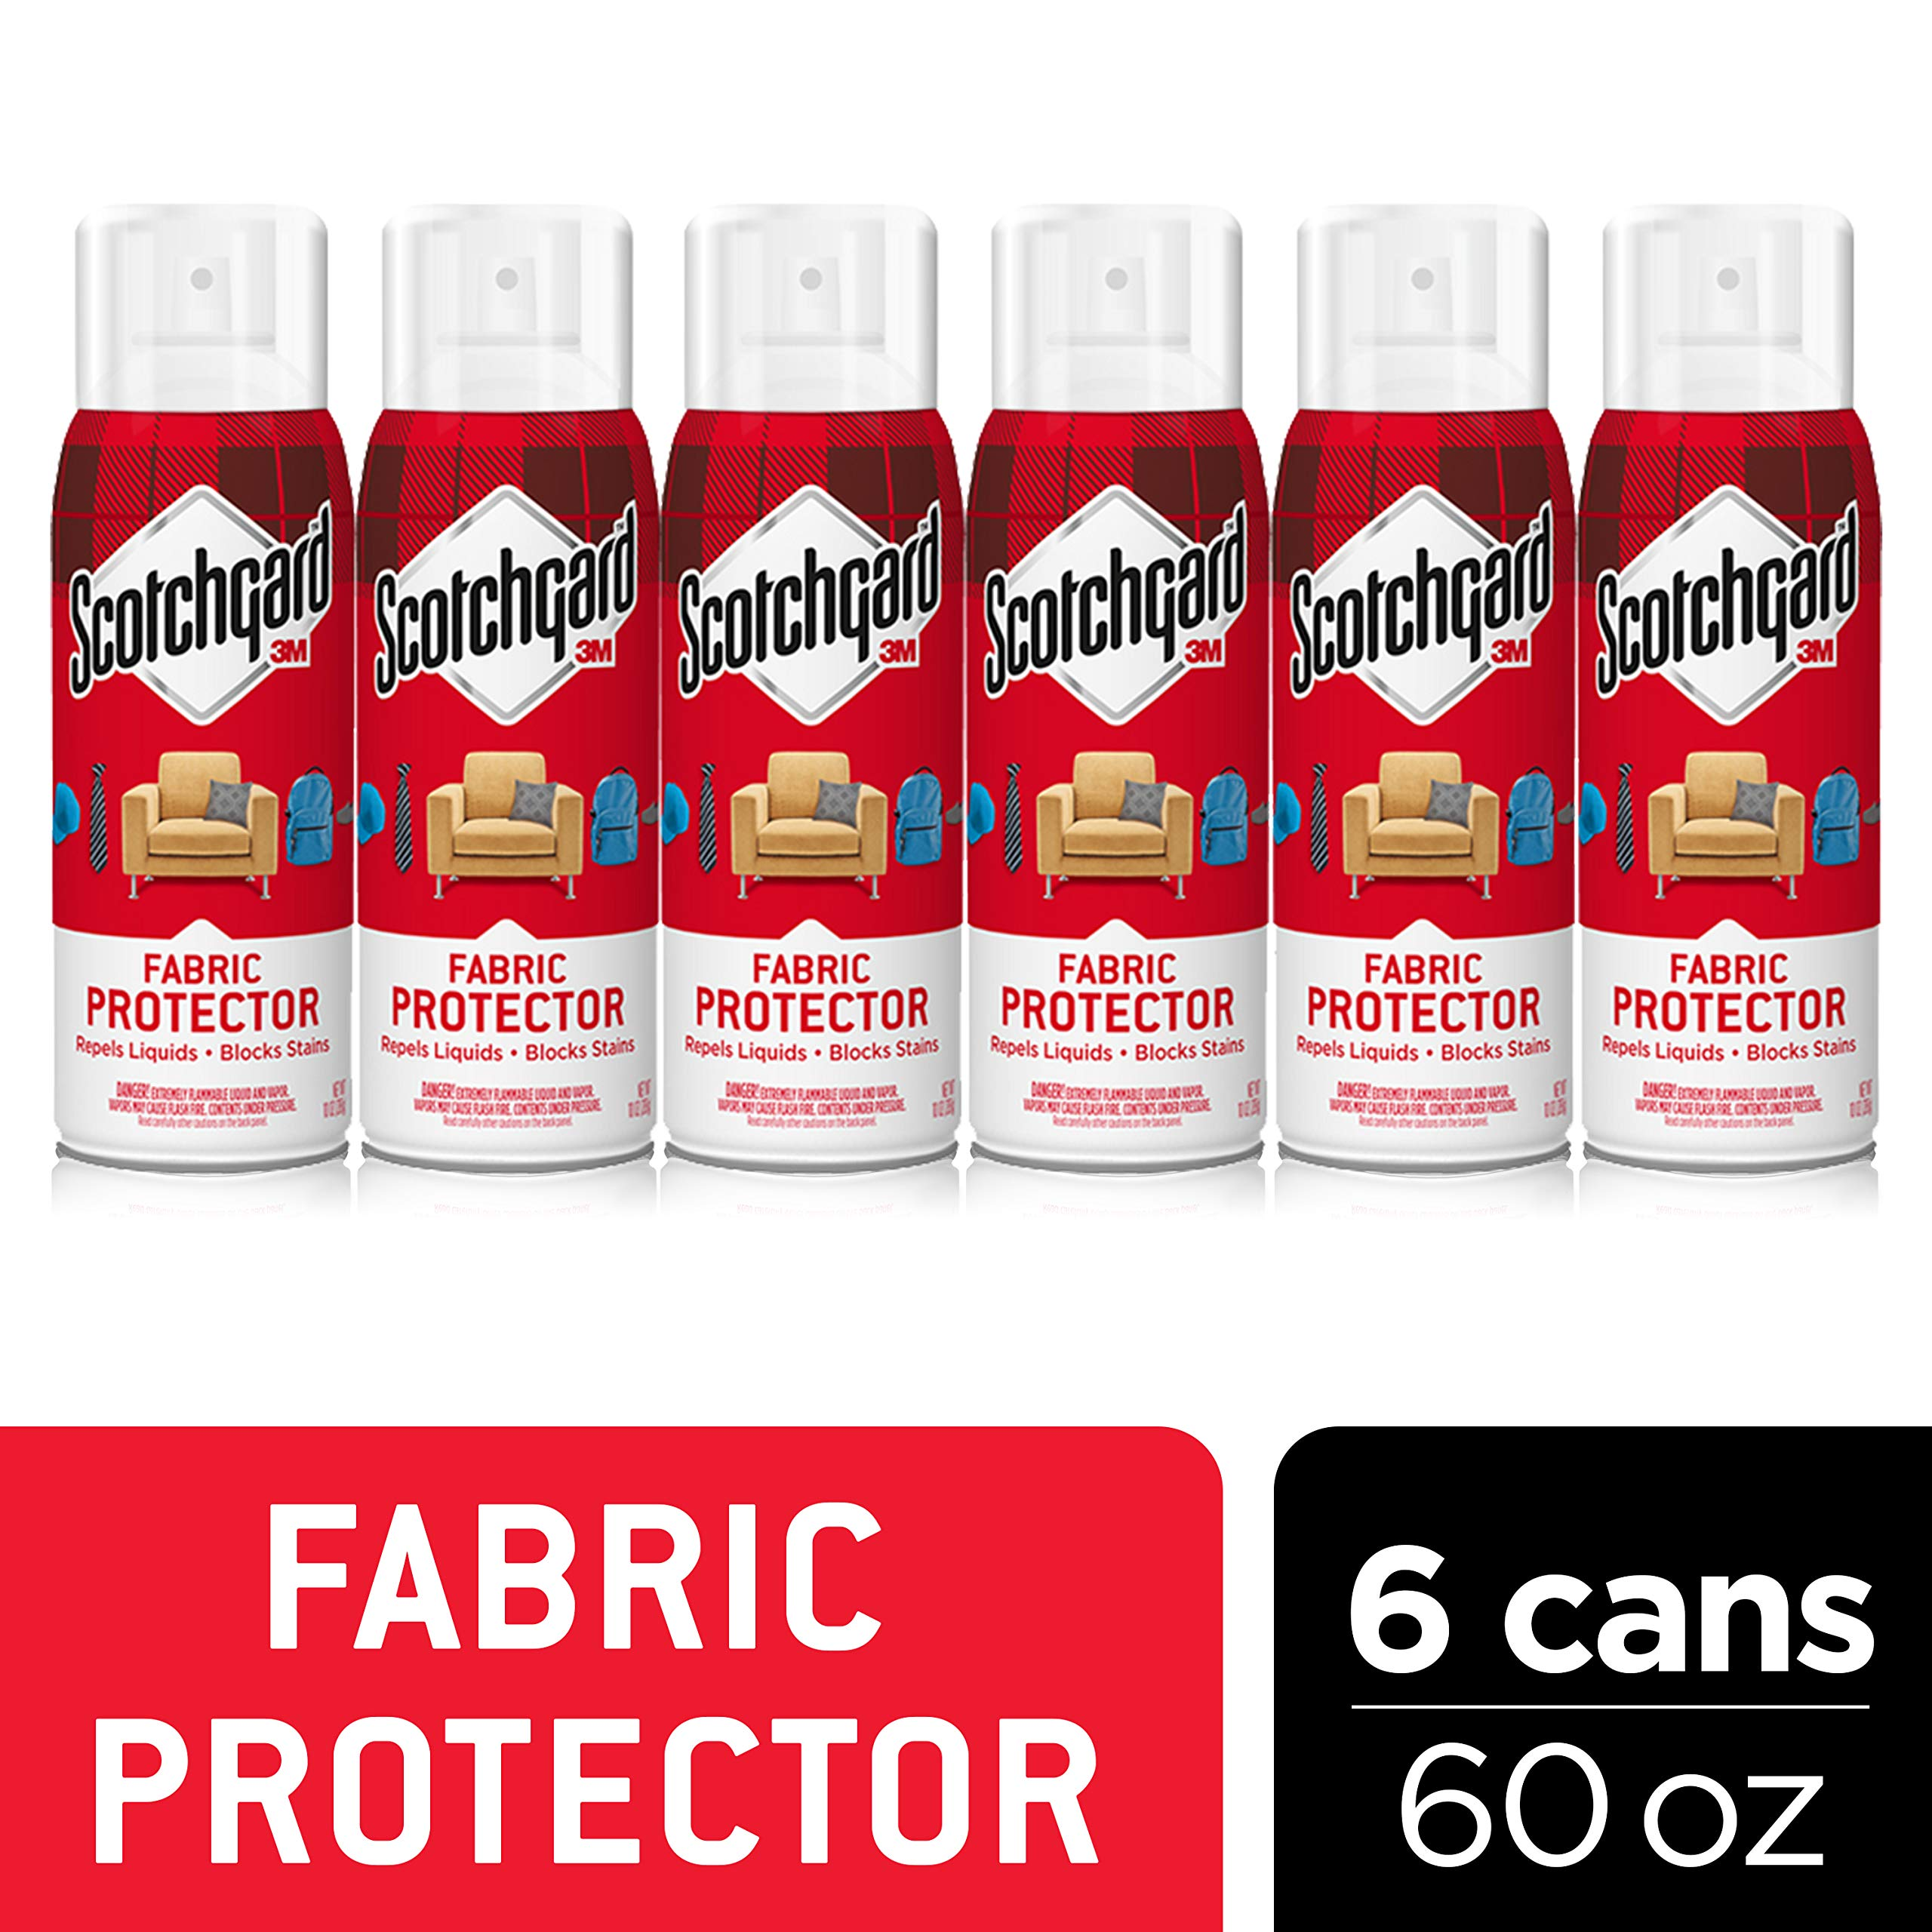 Scotchgard Fabric & Upholstery Protector, 6 Cans/10 Ounces per Can (60 Ounces Total) by Scotchgard (Image #1)